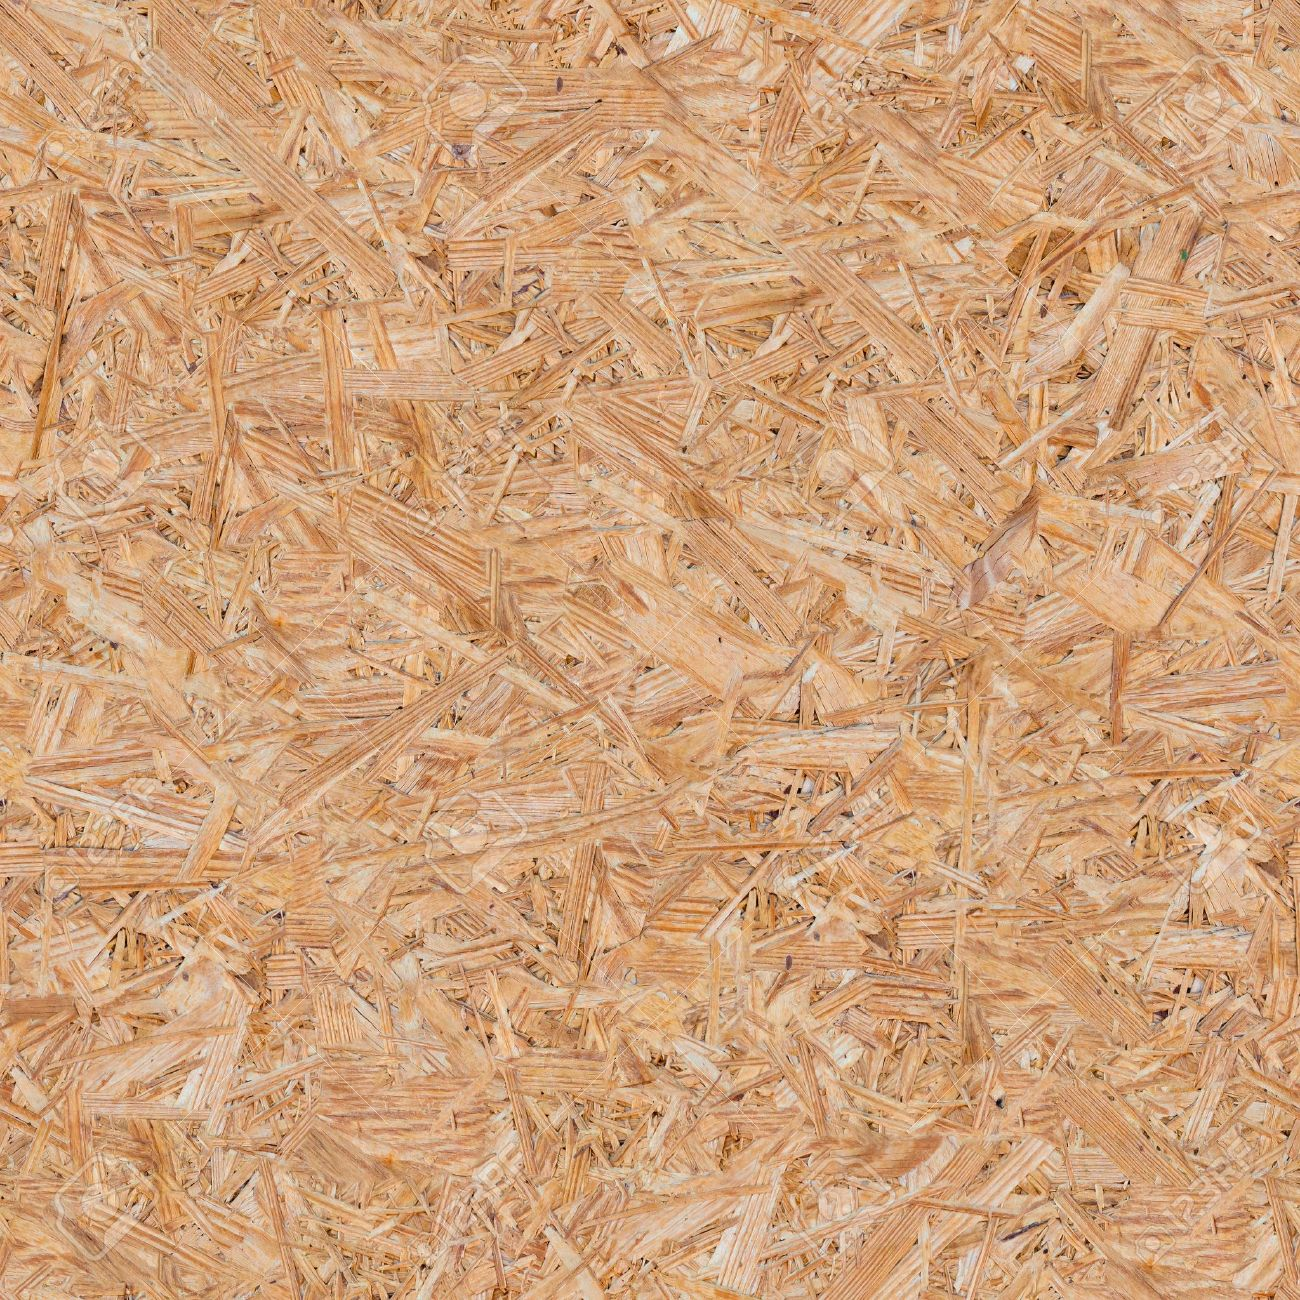 Pressed Wooden Panel Osb Seamless Tileable Texture Stock Photo